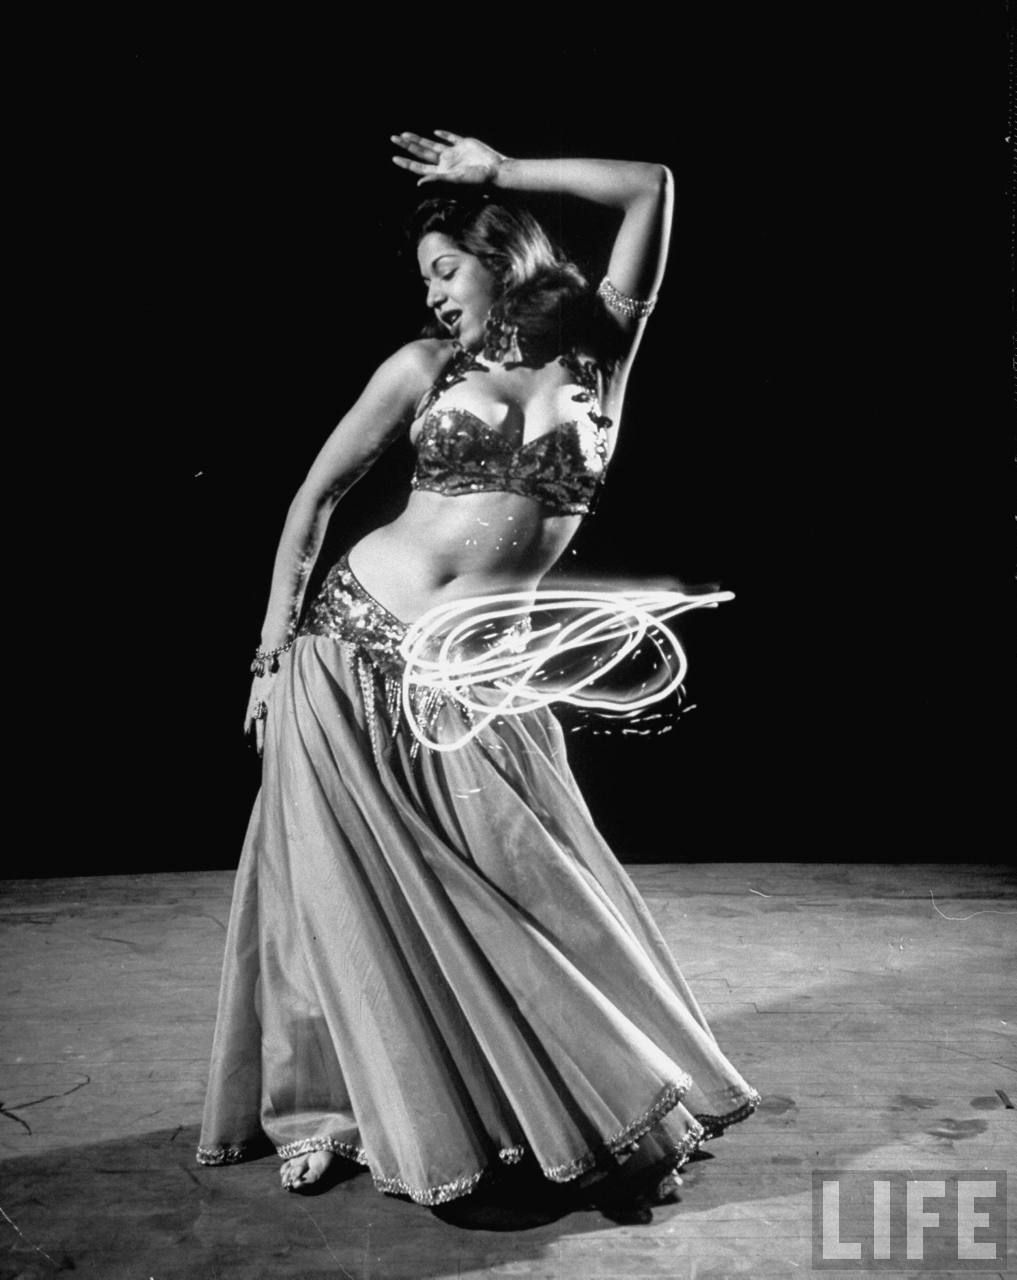 samia gmal belly dancer .from egypt | Egypt travel and ...